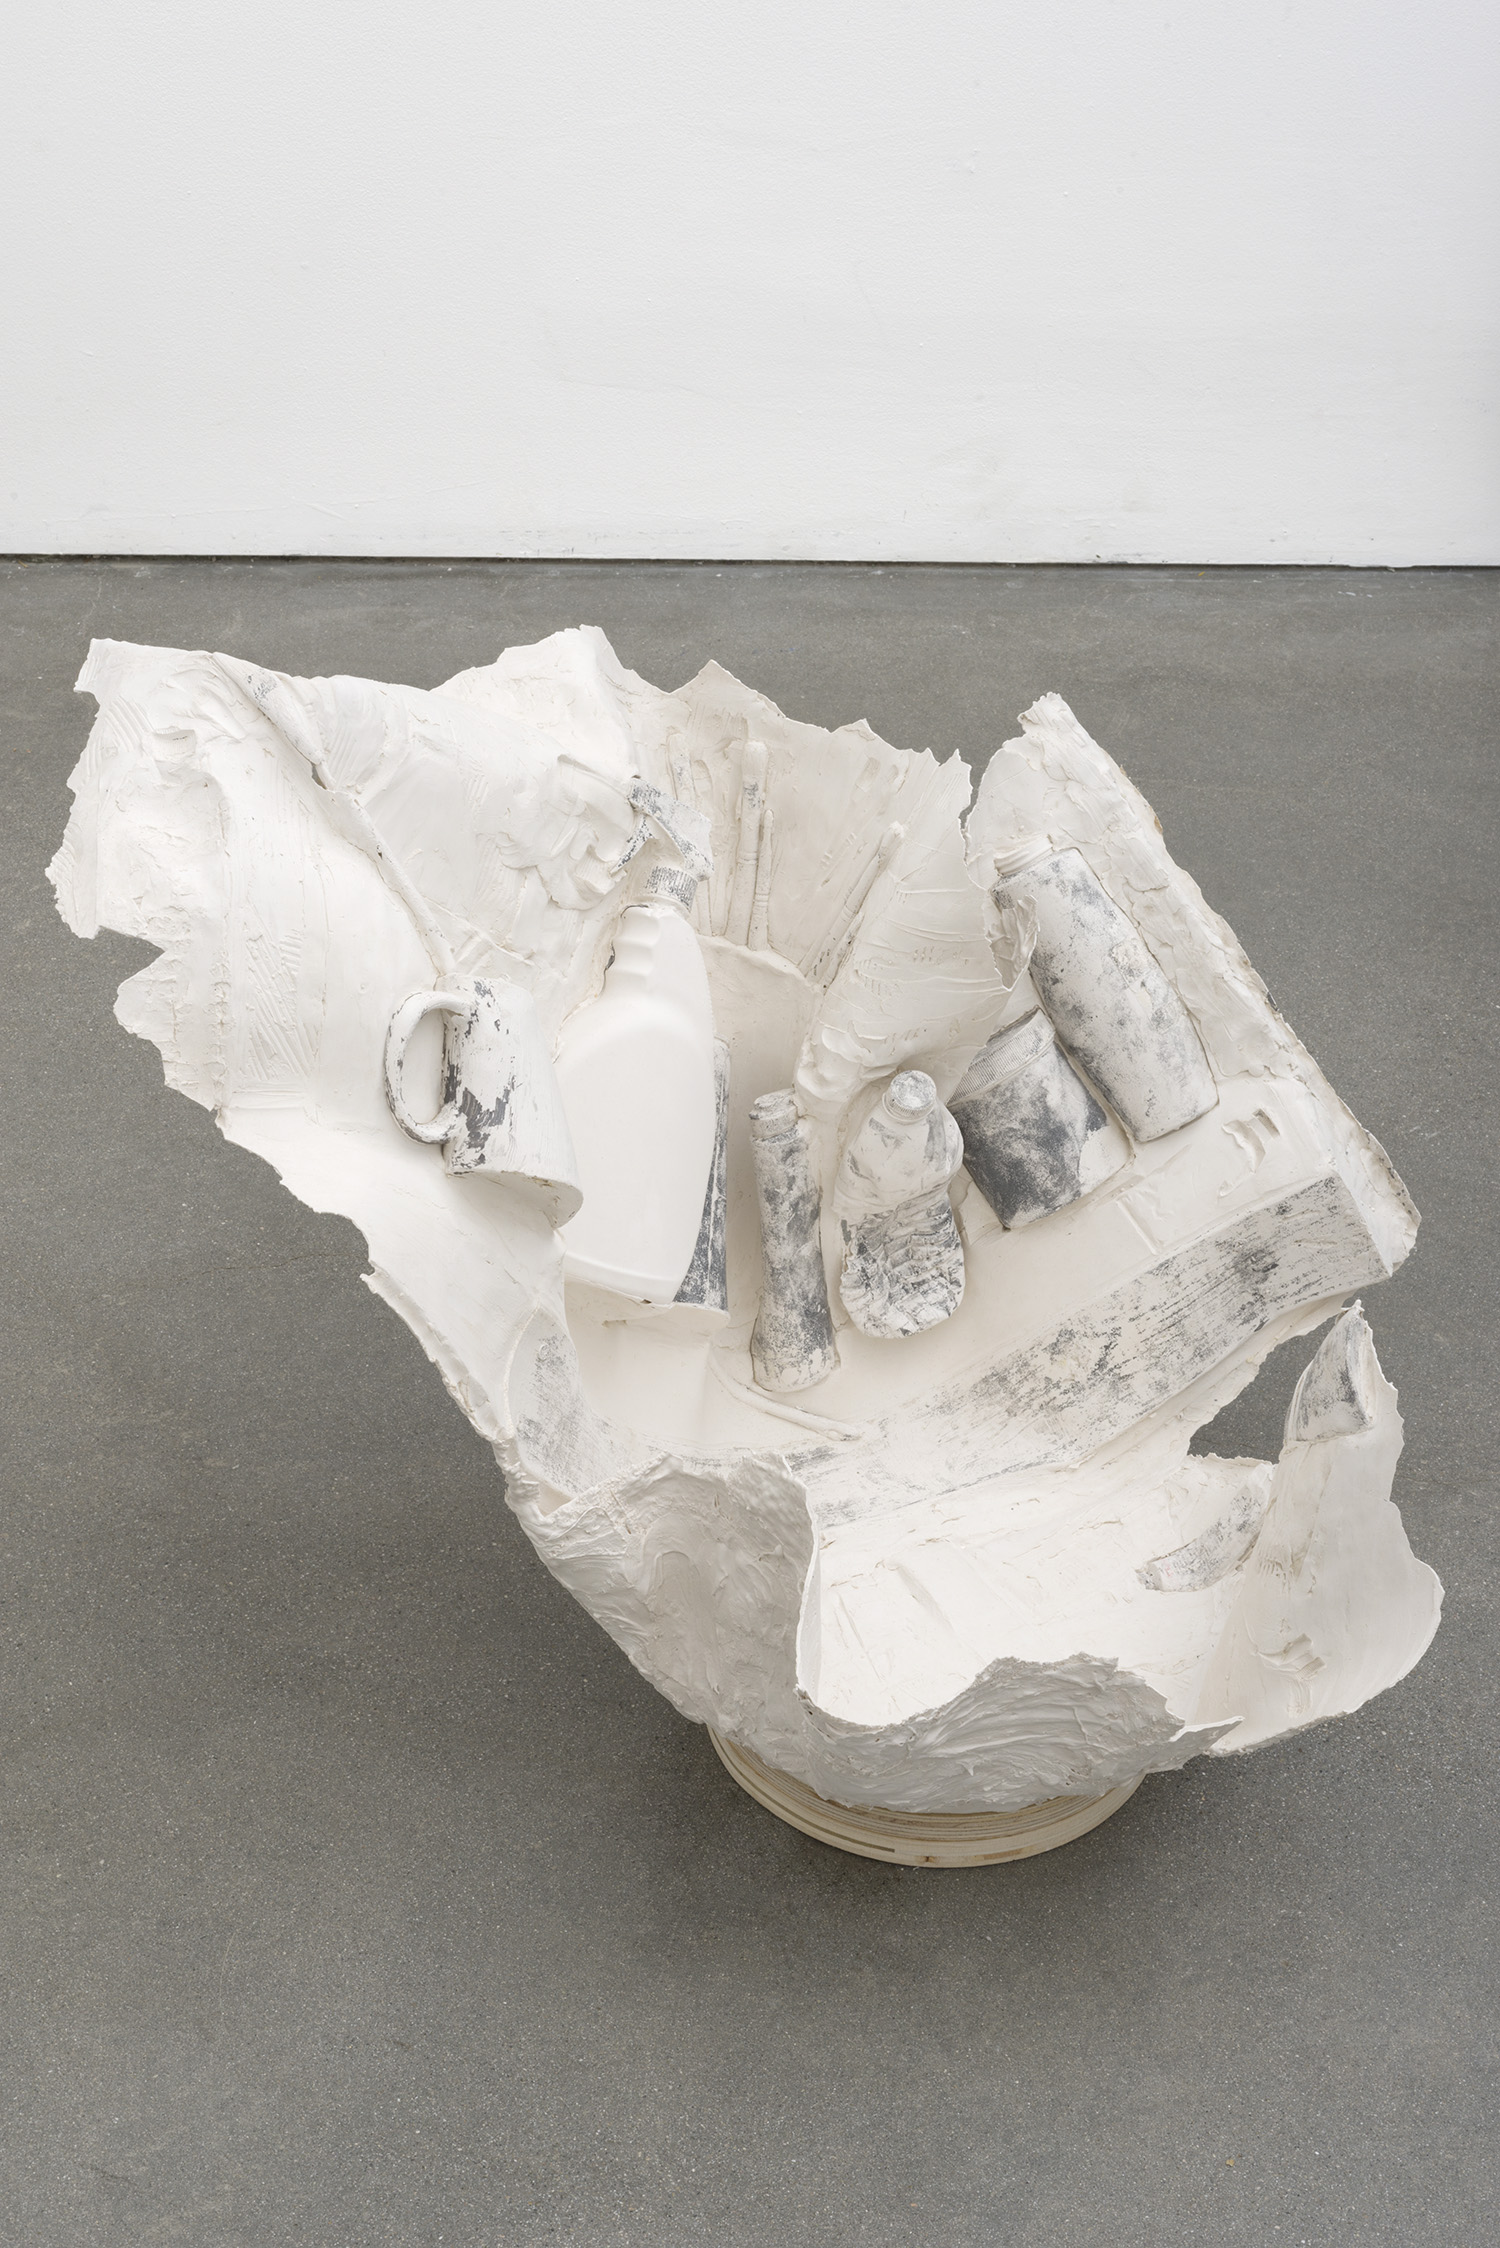 Splashed , 2014 Gypsum cement, fiberglass cloth, wood 27 x 30 x 30 inches